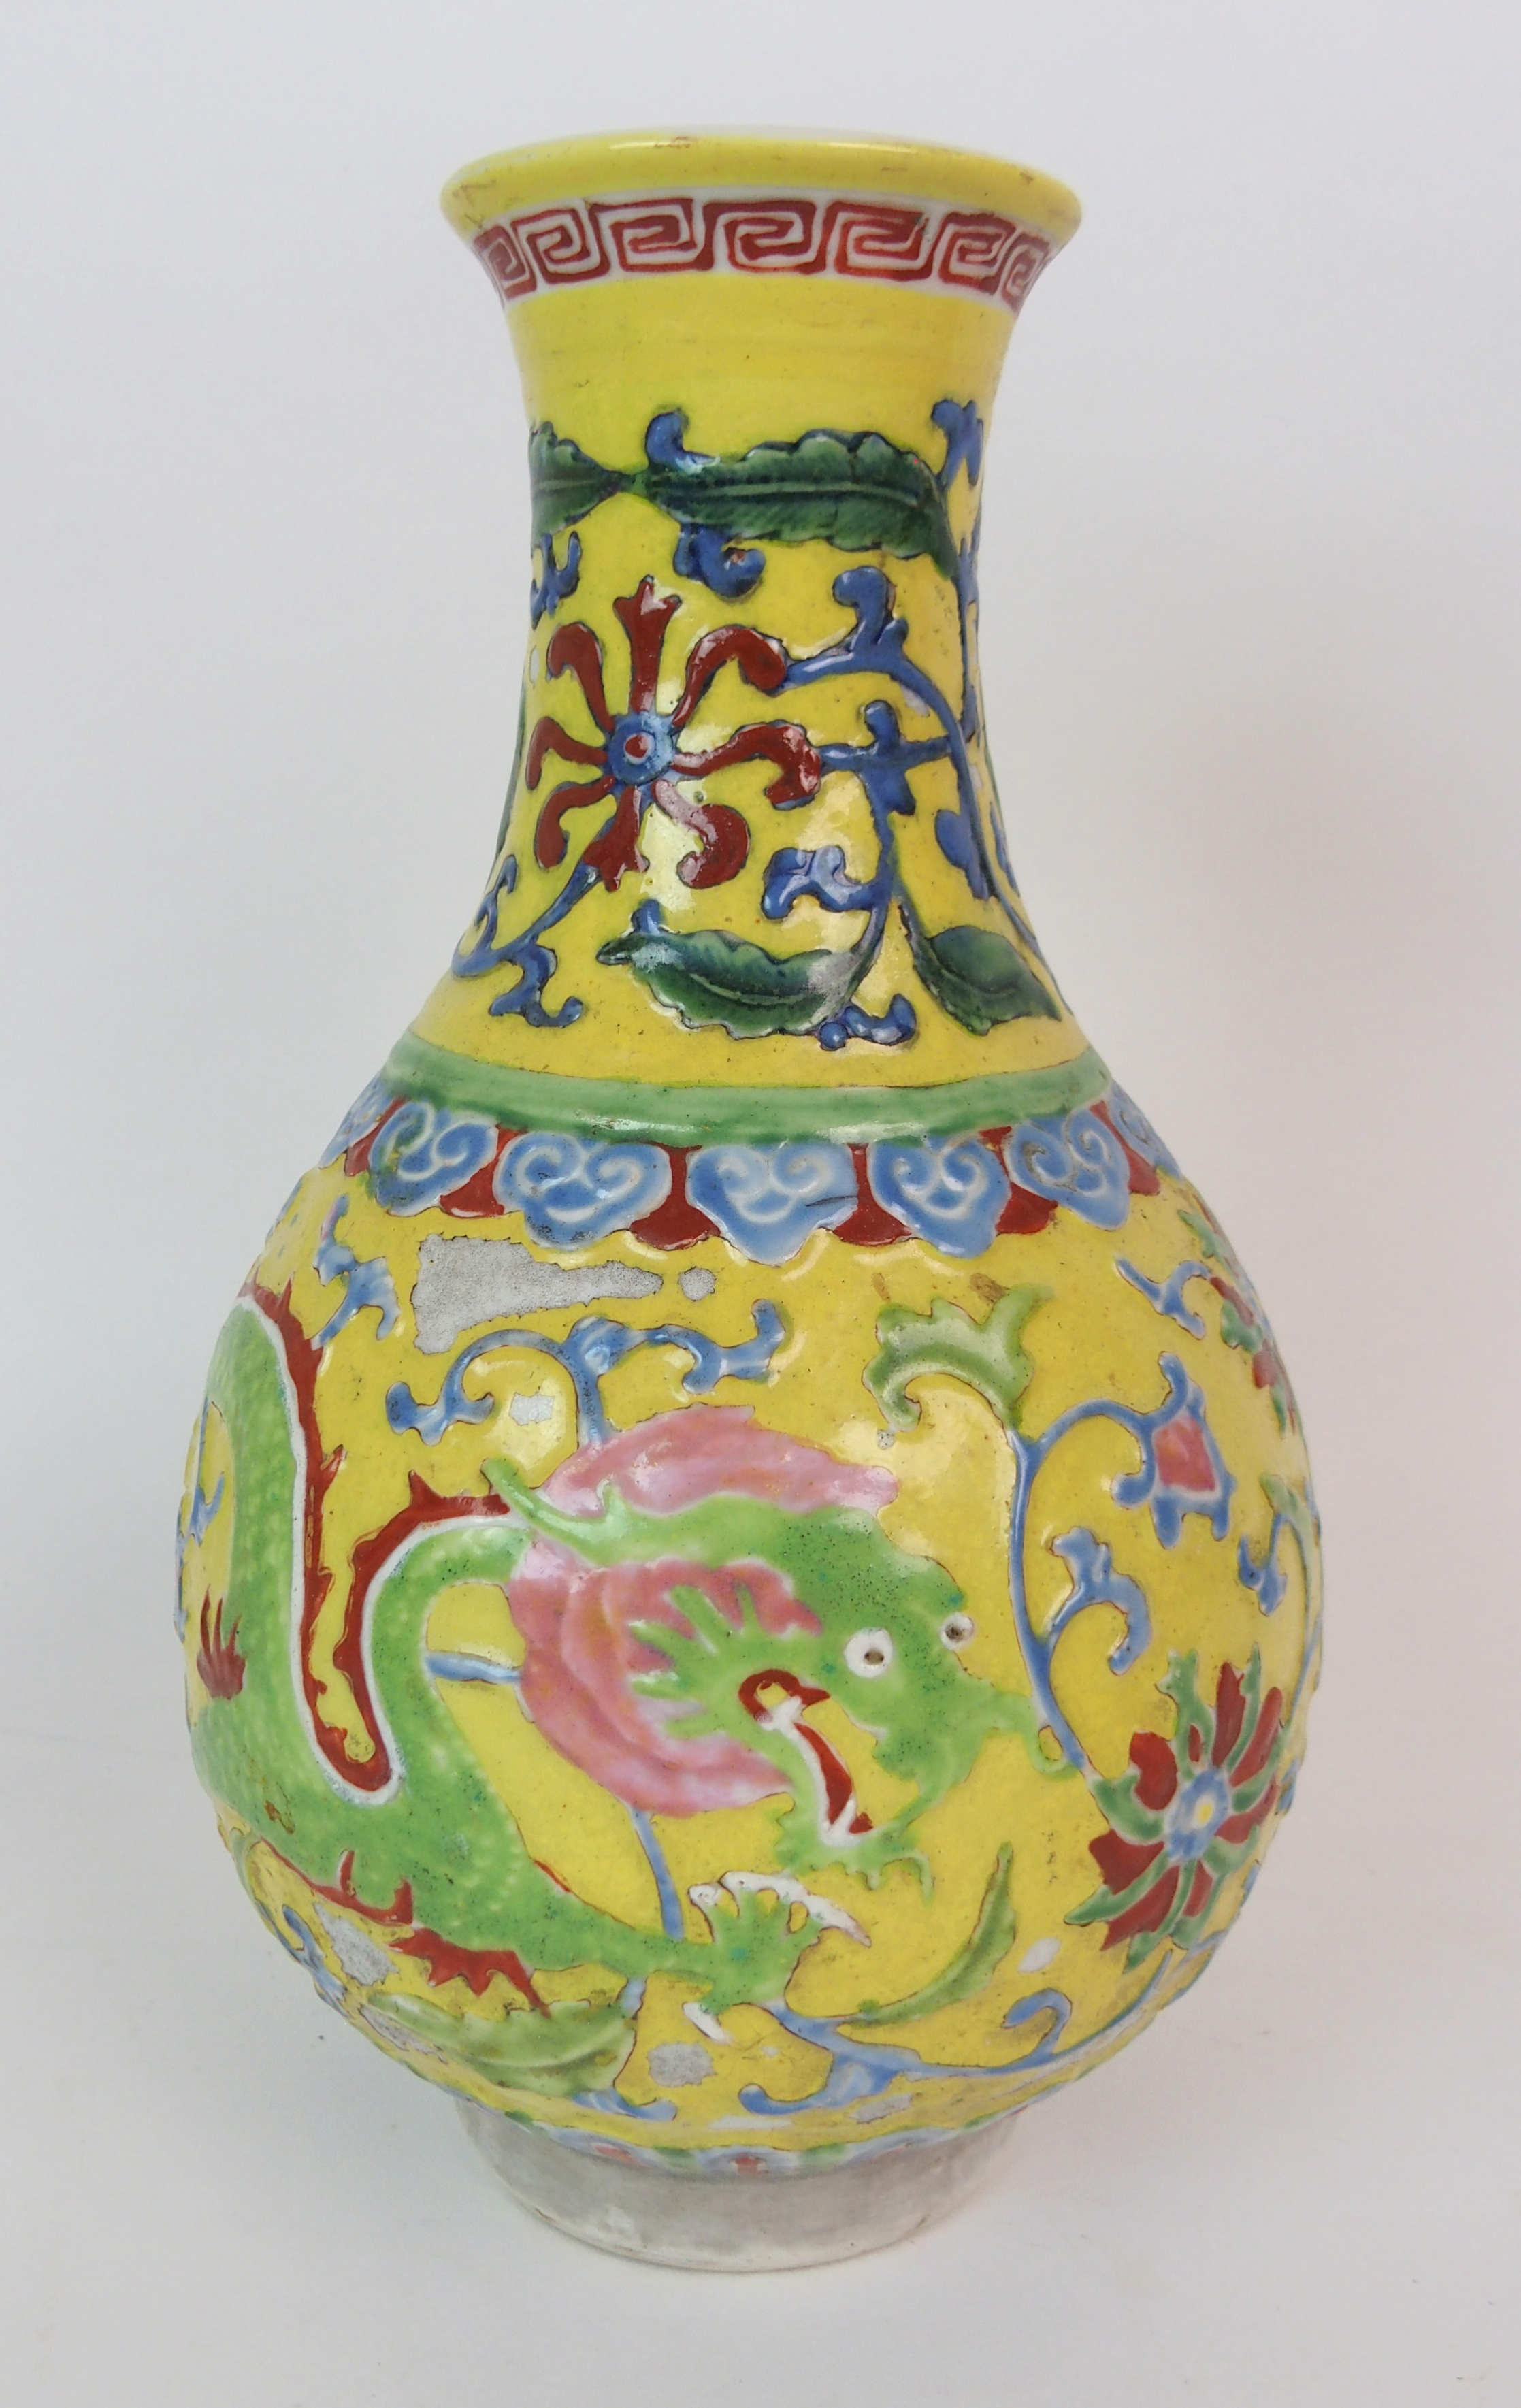 Lot 23 - A CHINESE RELIEF MOULDED BALUSTER VASE decorated with dragons and foliage on a yellow ground (